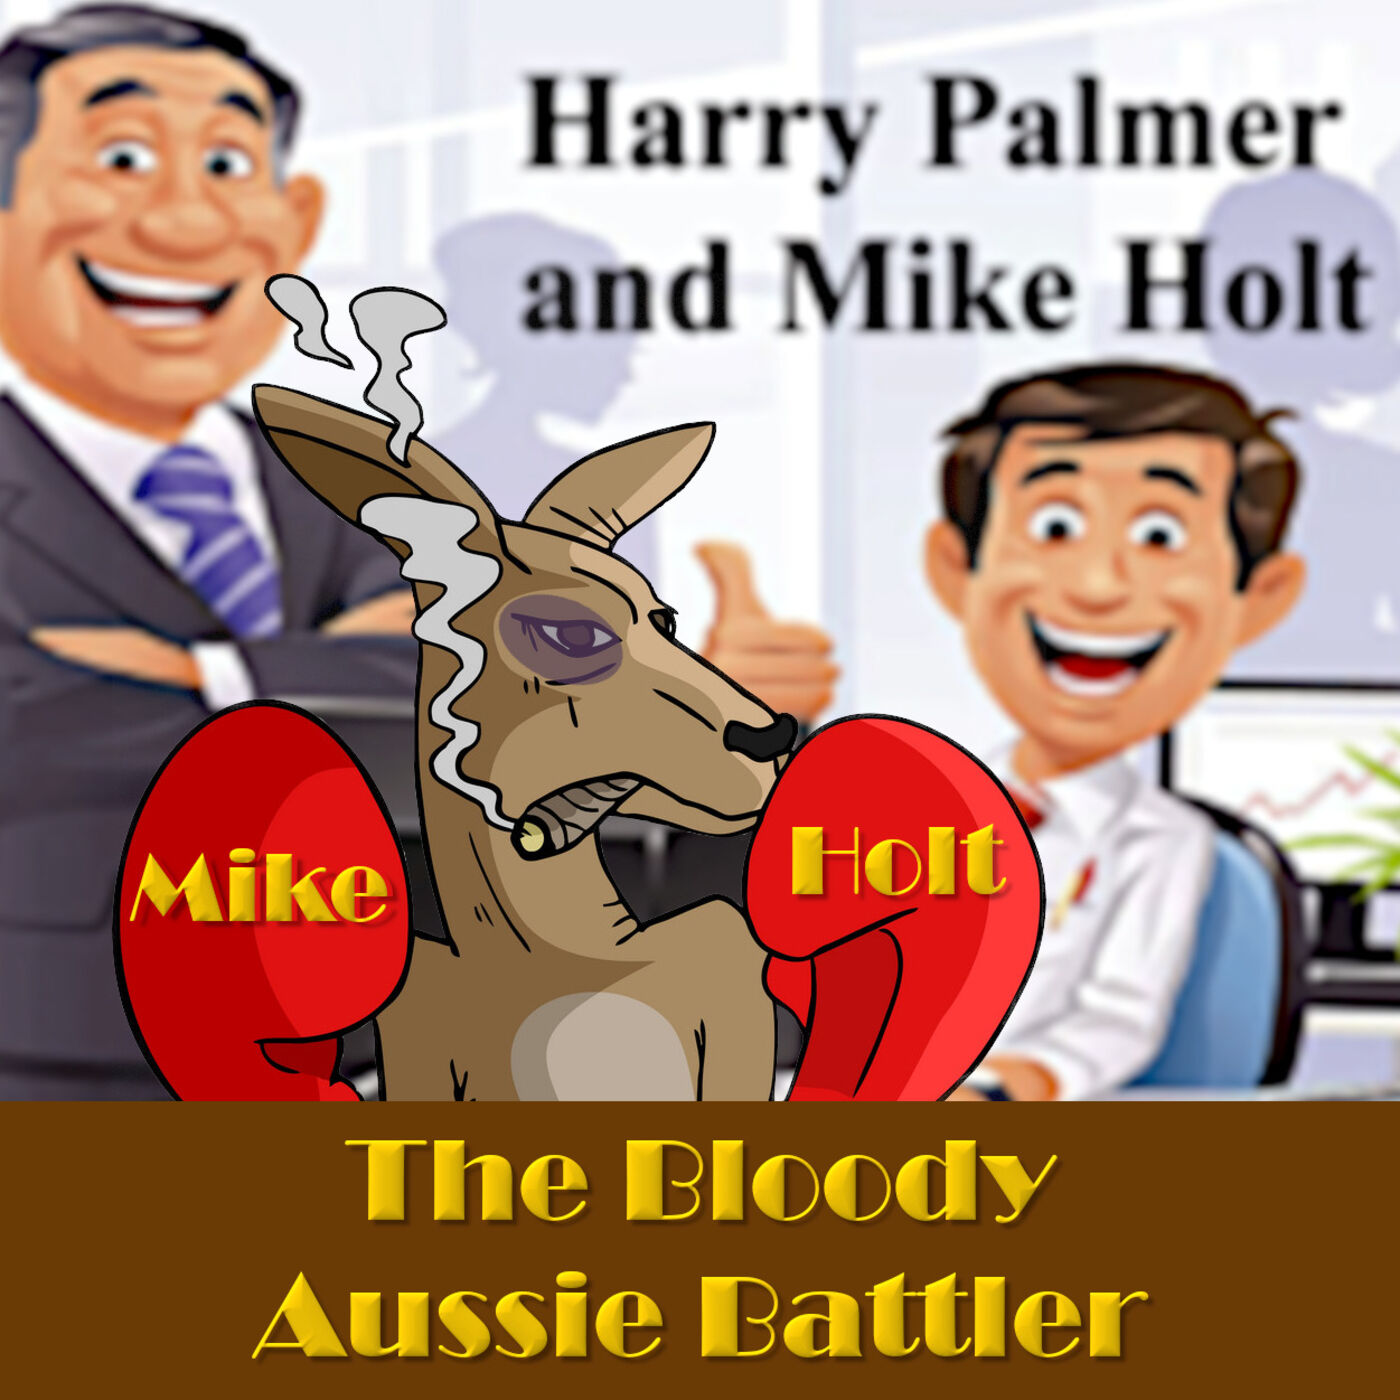 Harry & Mike Discuss the real issues behind the Cash Ban